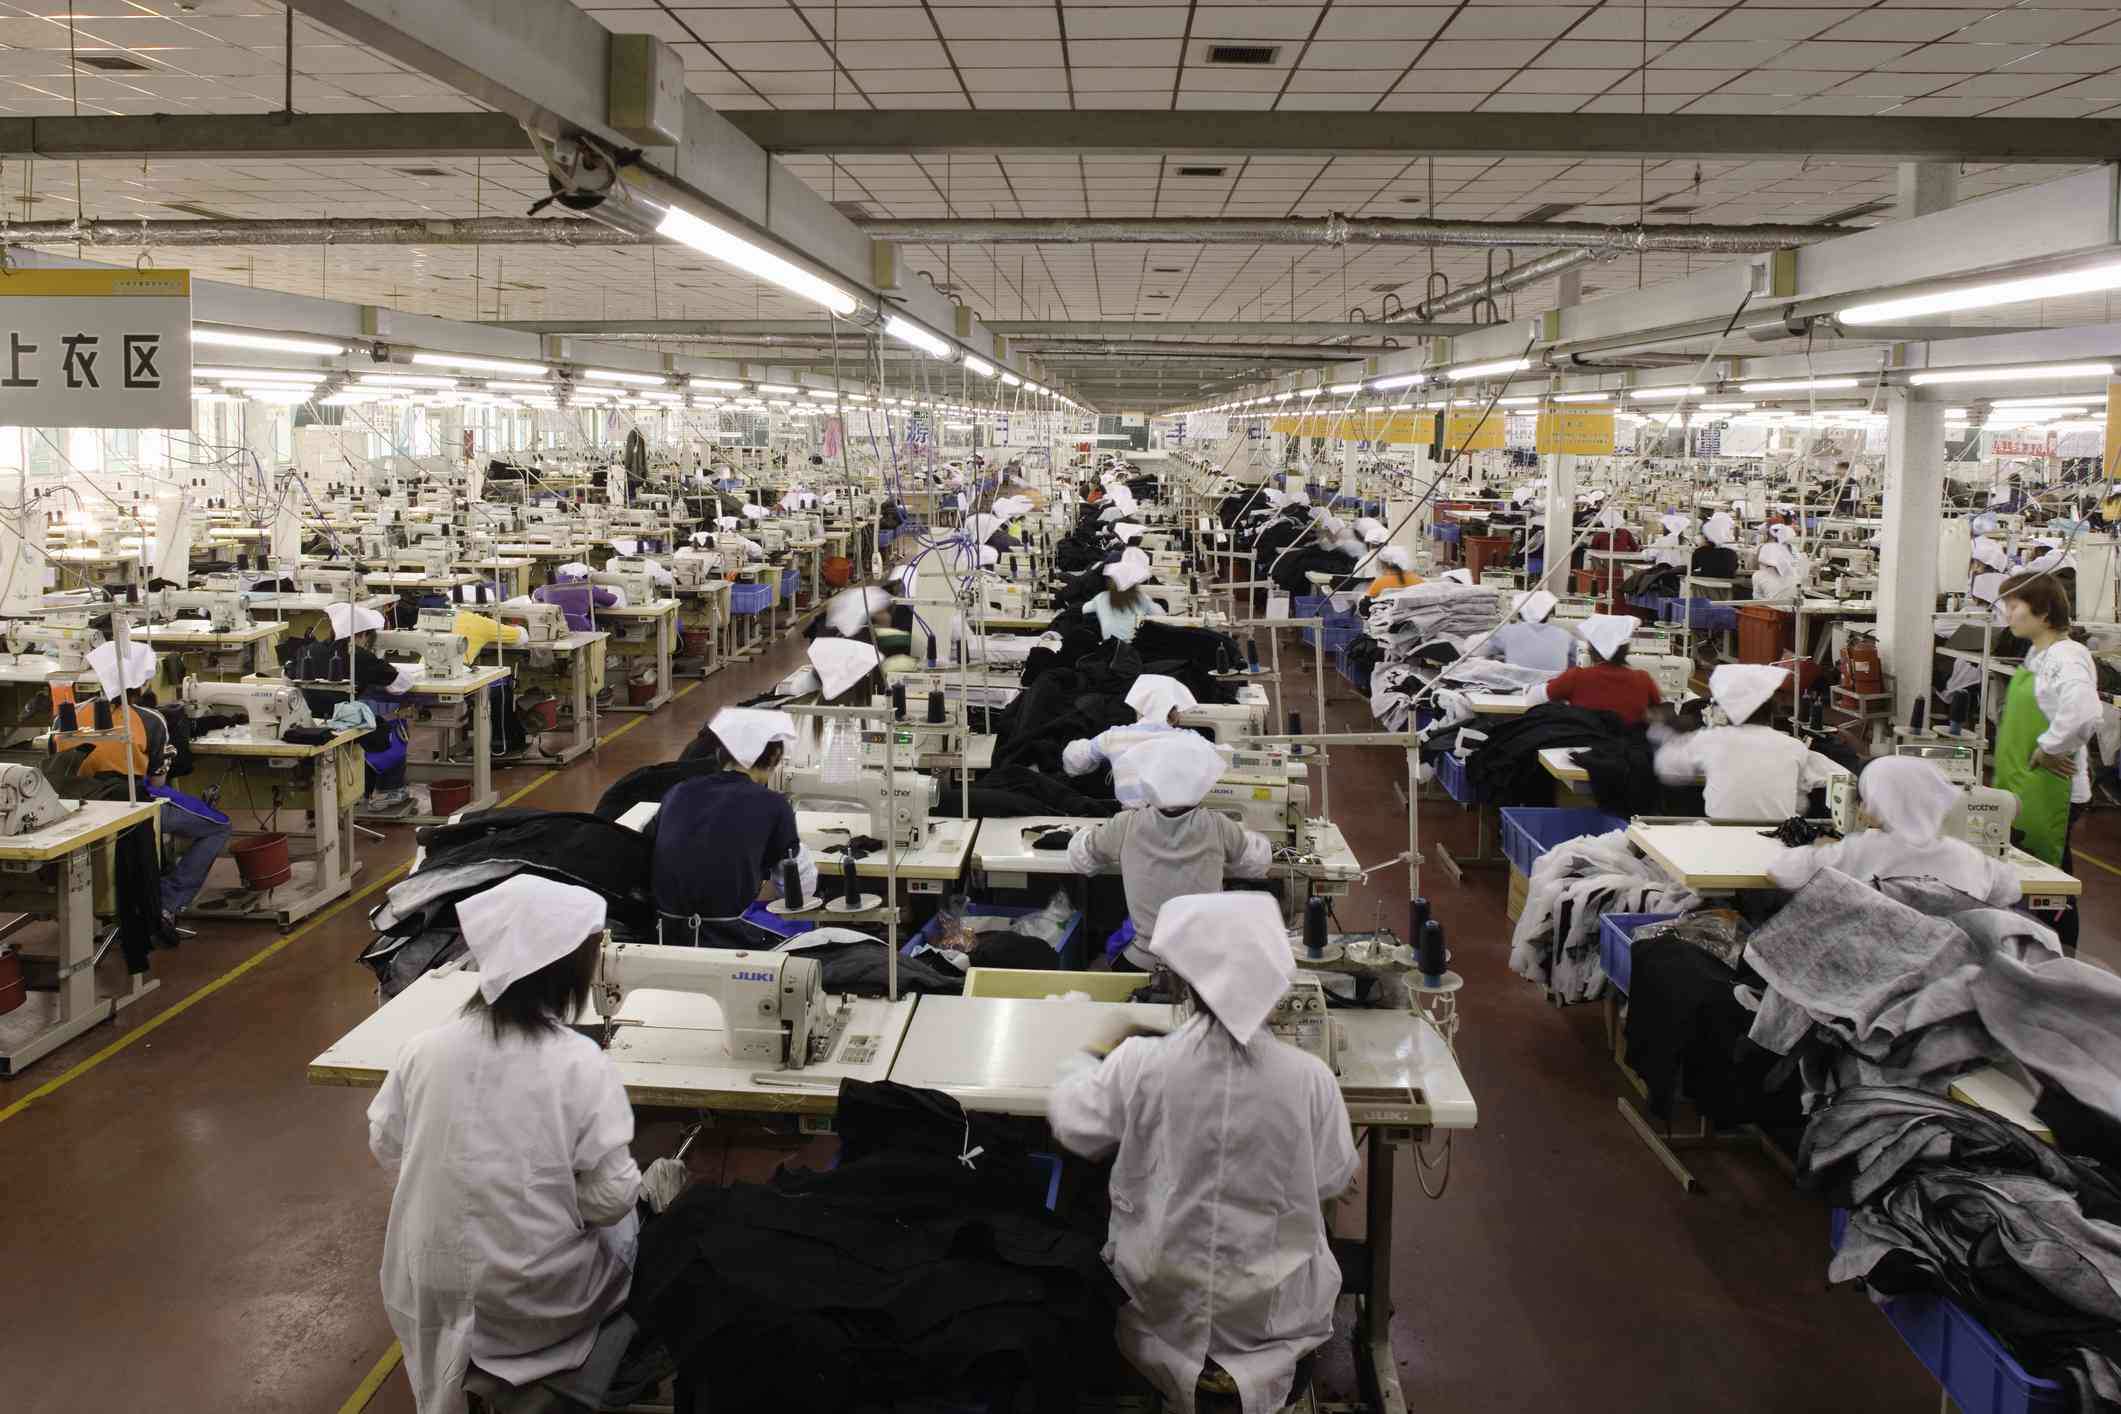 Workers at sewing machines in a factory